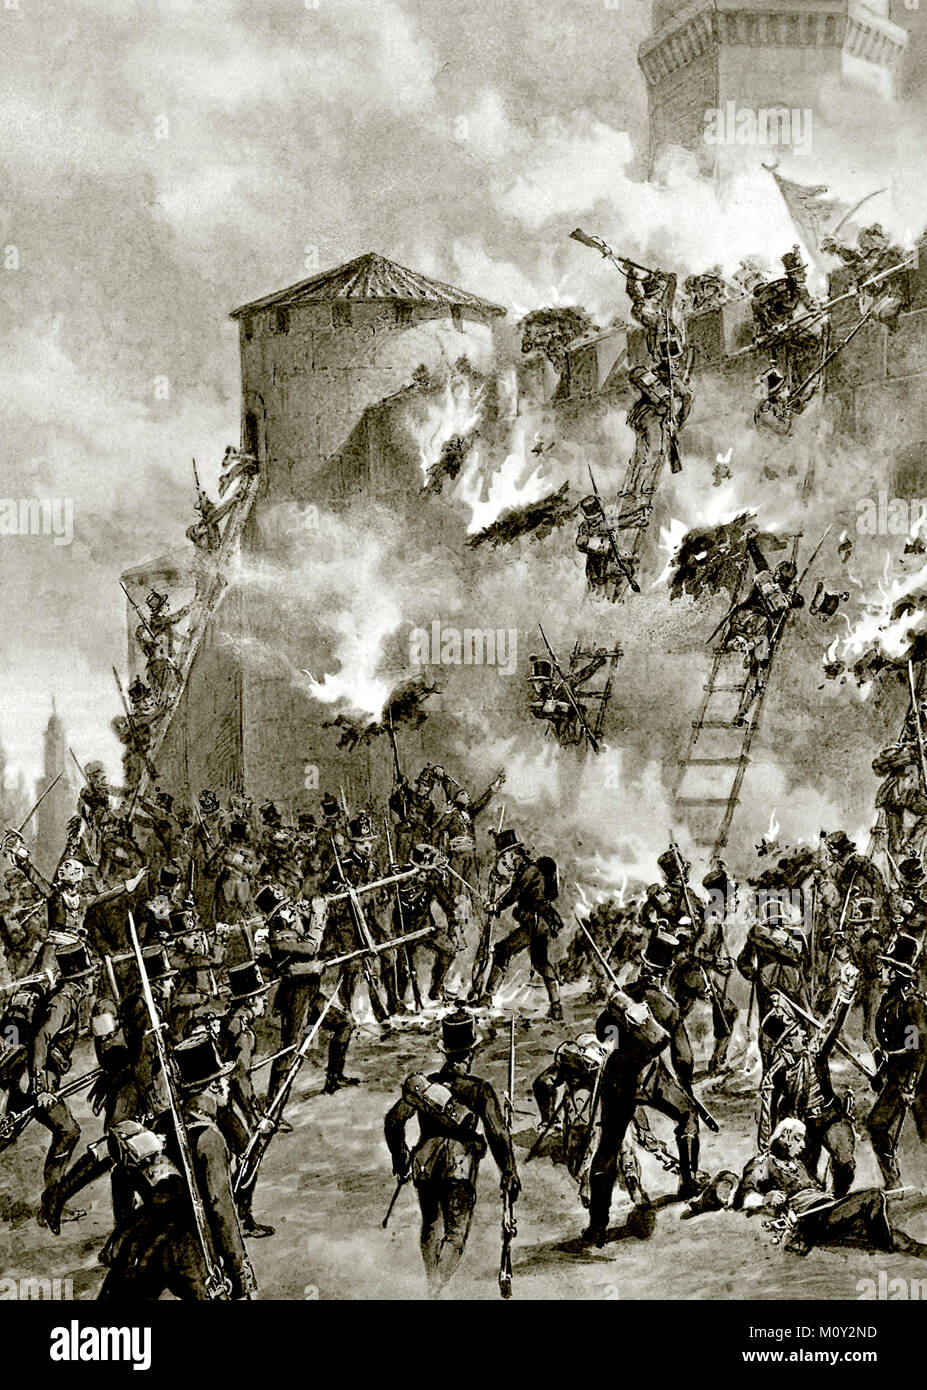 Taking the storm of the Ganja fortress on the 16th (4th) of January 1804 - Adolf Iosifovich Charlemagne 1892 - Stock Image